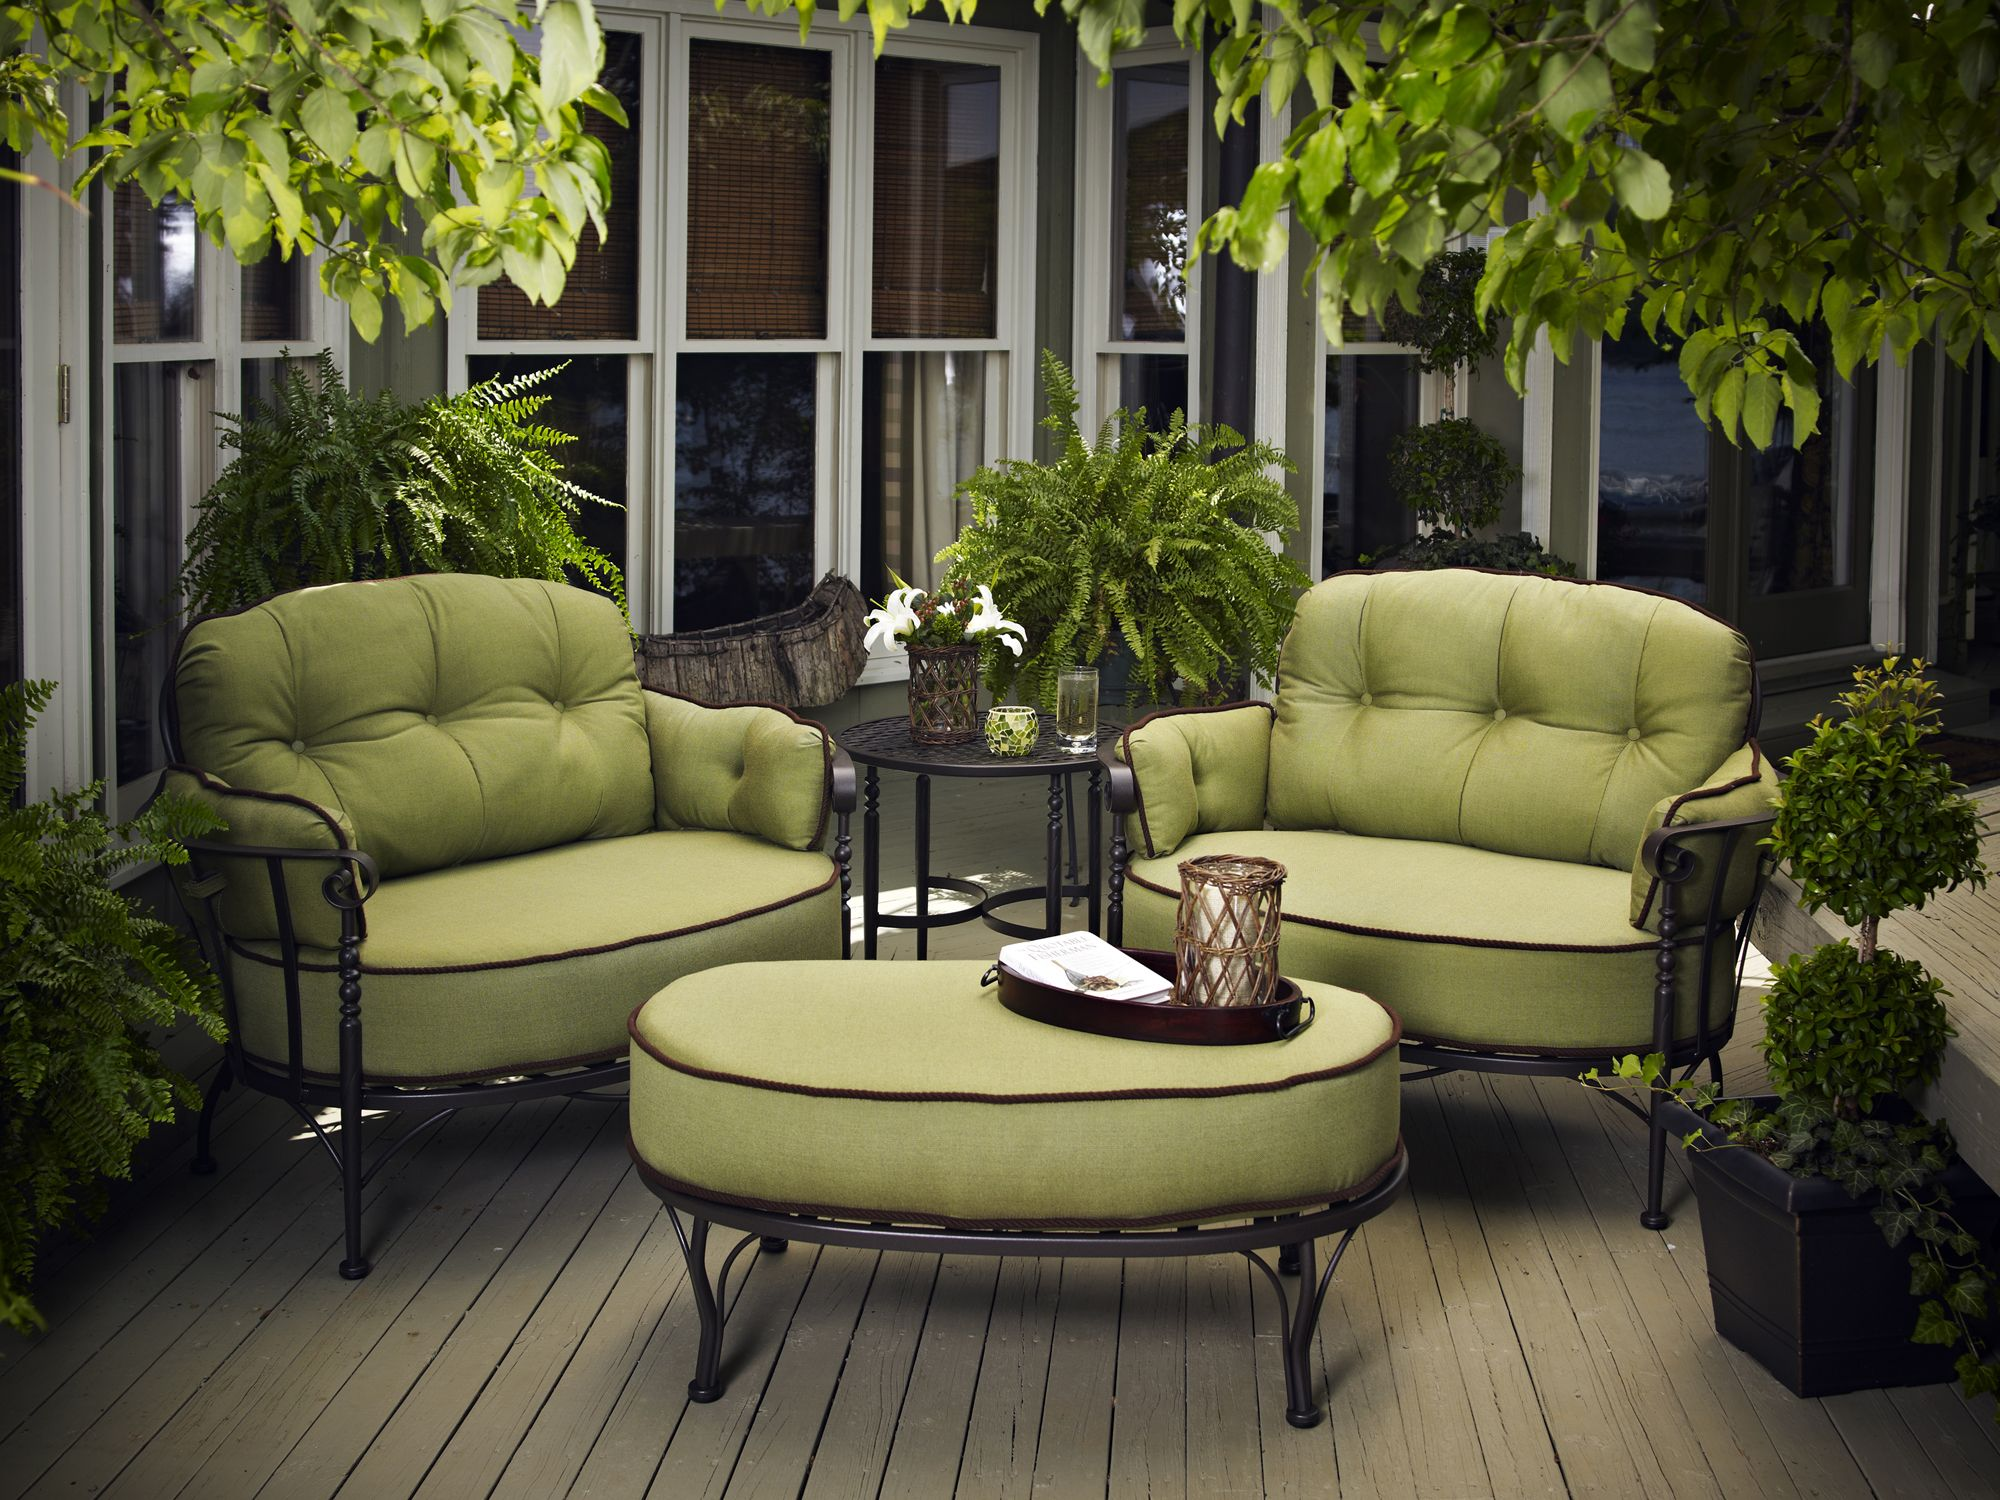 Meadowcraft Athens Deep Seating Wrought Iron Cuddle Lounge